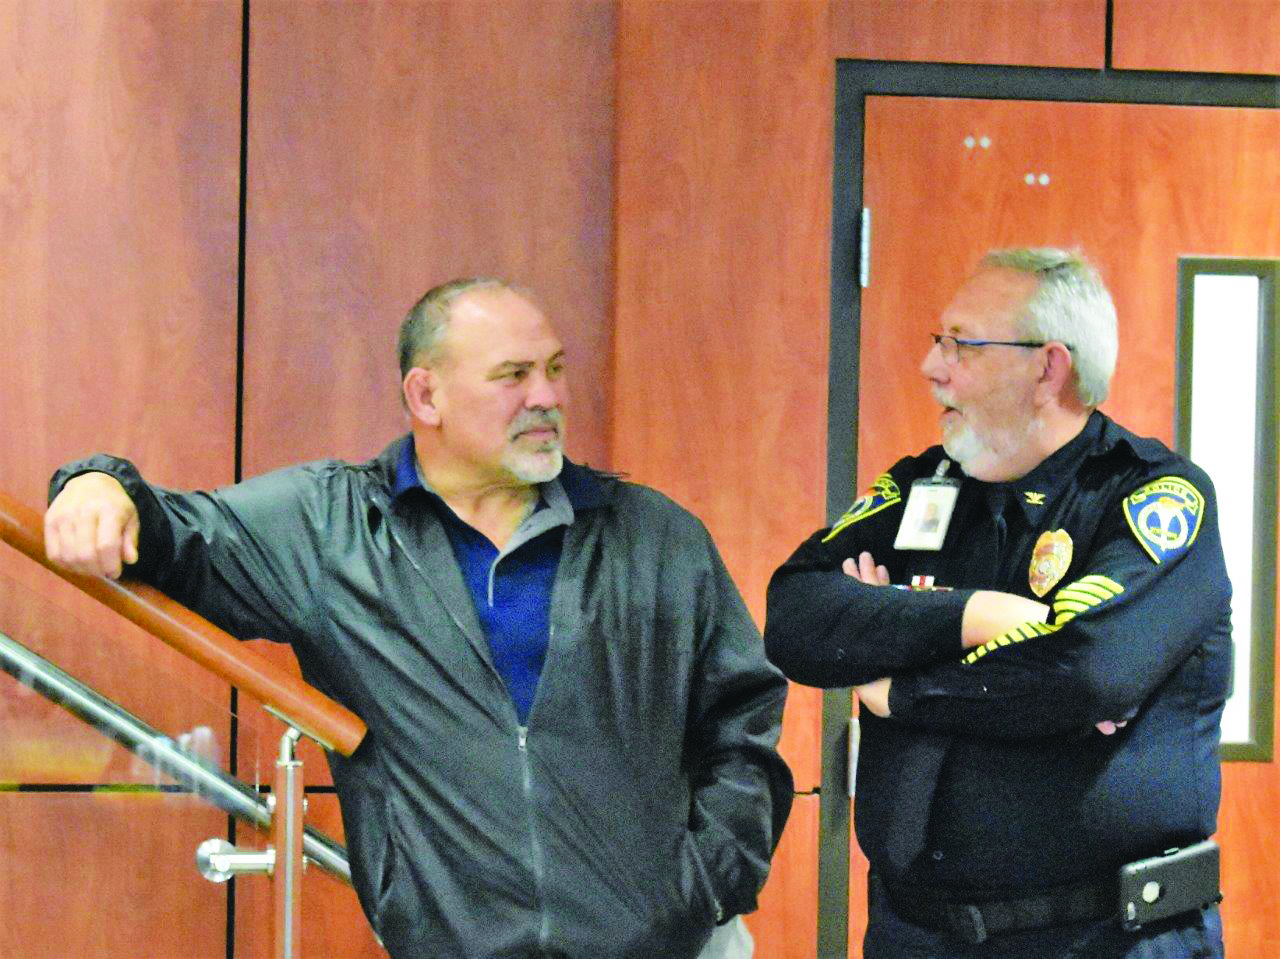 School Board member Rick Steiner, left, talks with CCSD School Police Chief Mark Kissel, who is retiring this year after 20 years of service that began with establishing the police department.